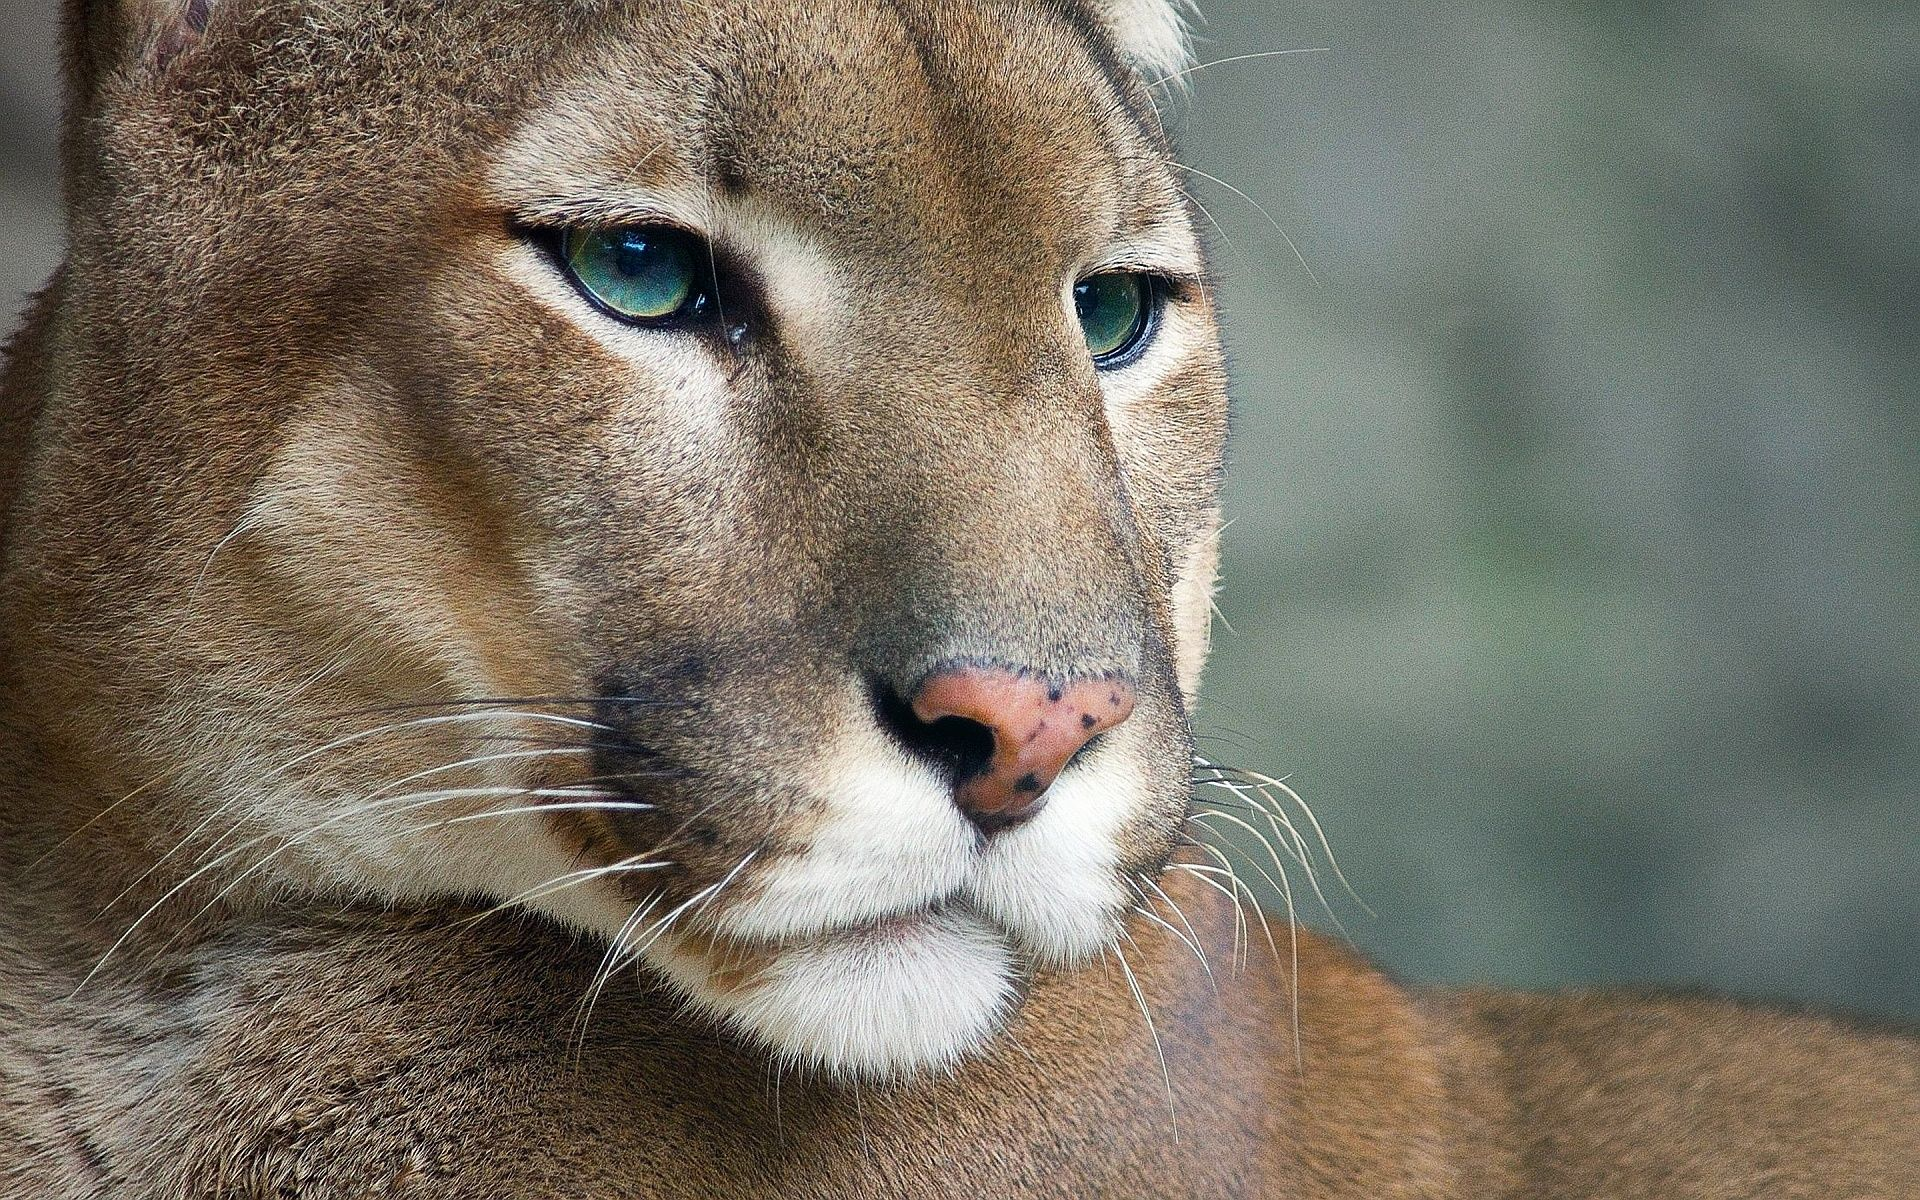 cougar photos | nice cougar wallpapers pictures photos images | wild